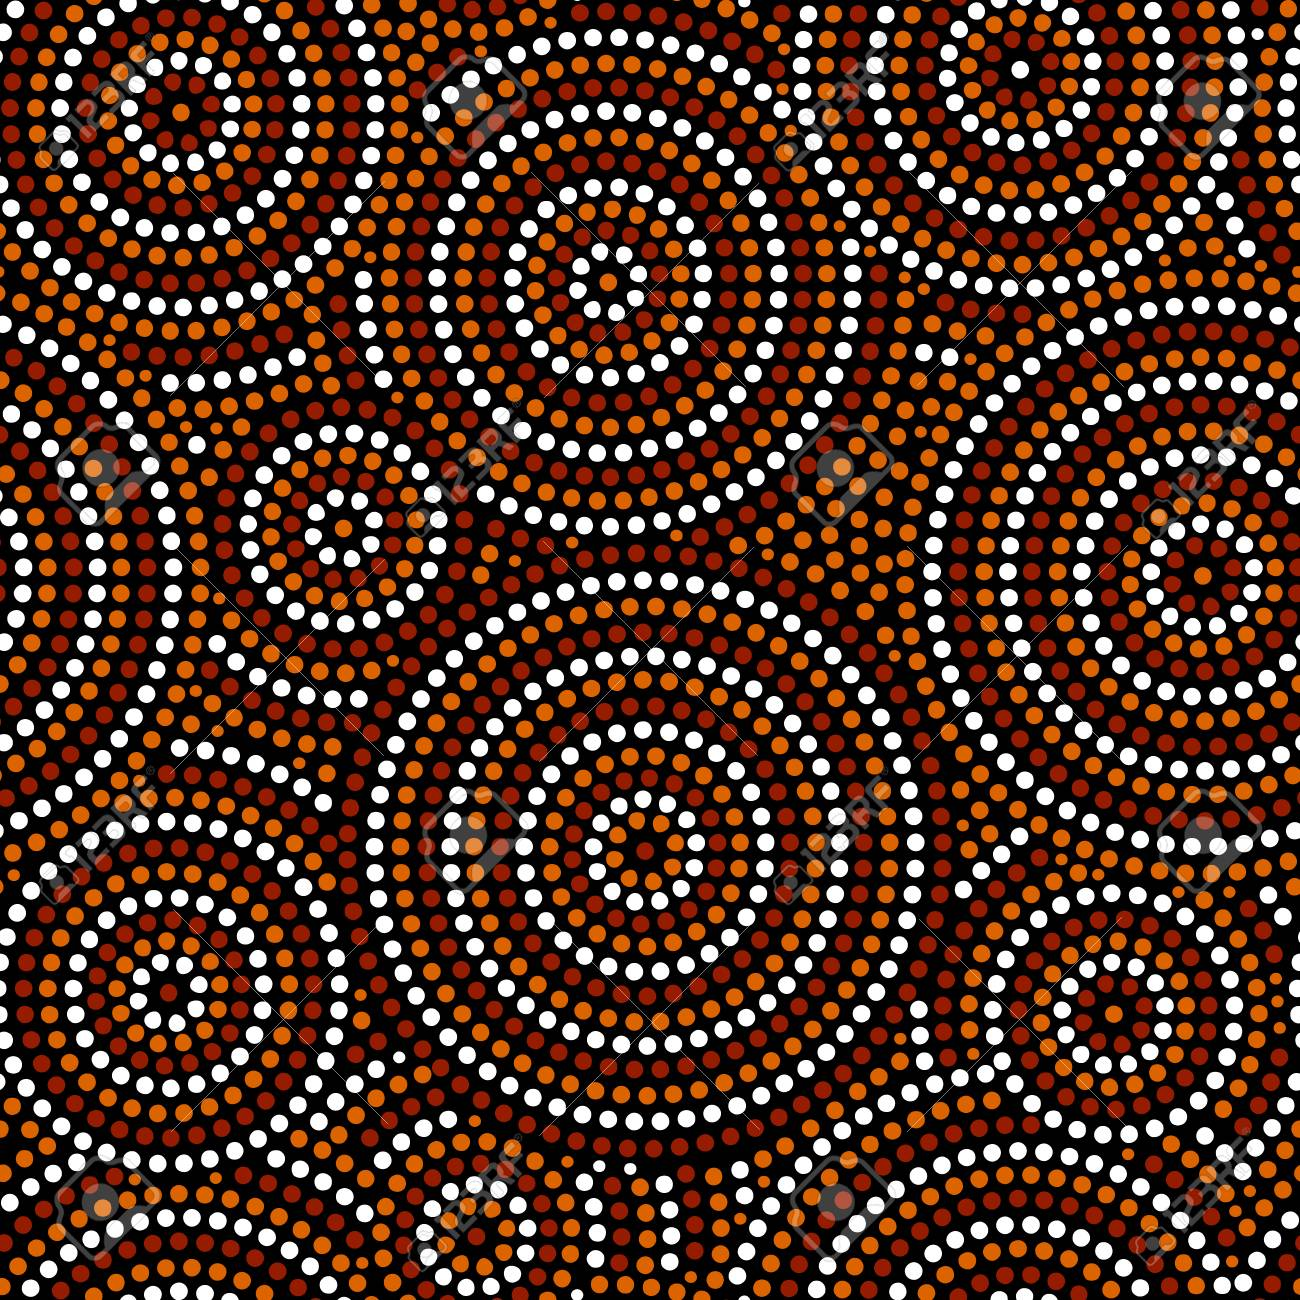 Australian Aboriginal Dot Art Circles Abstract Geometric Seamless